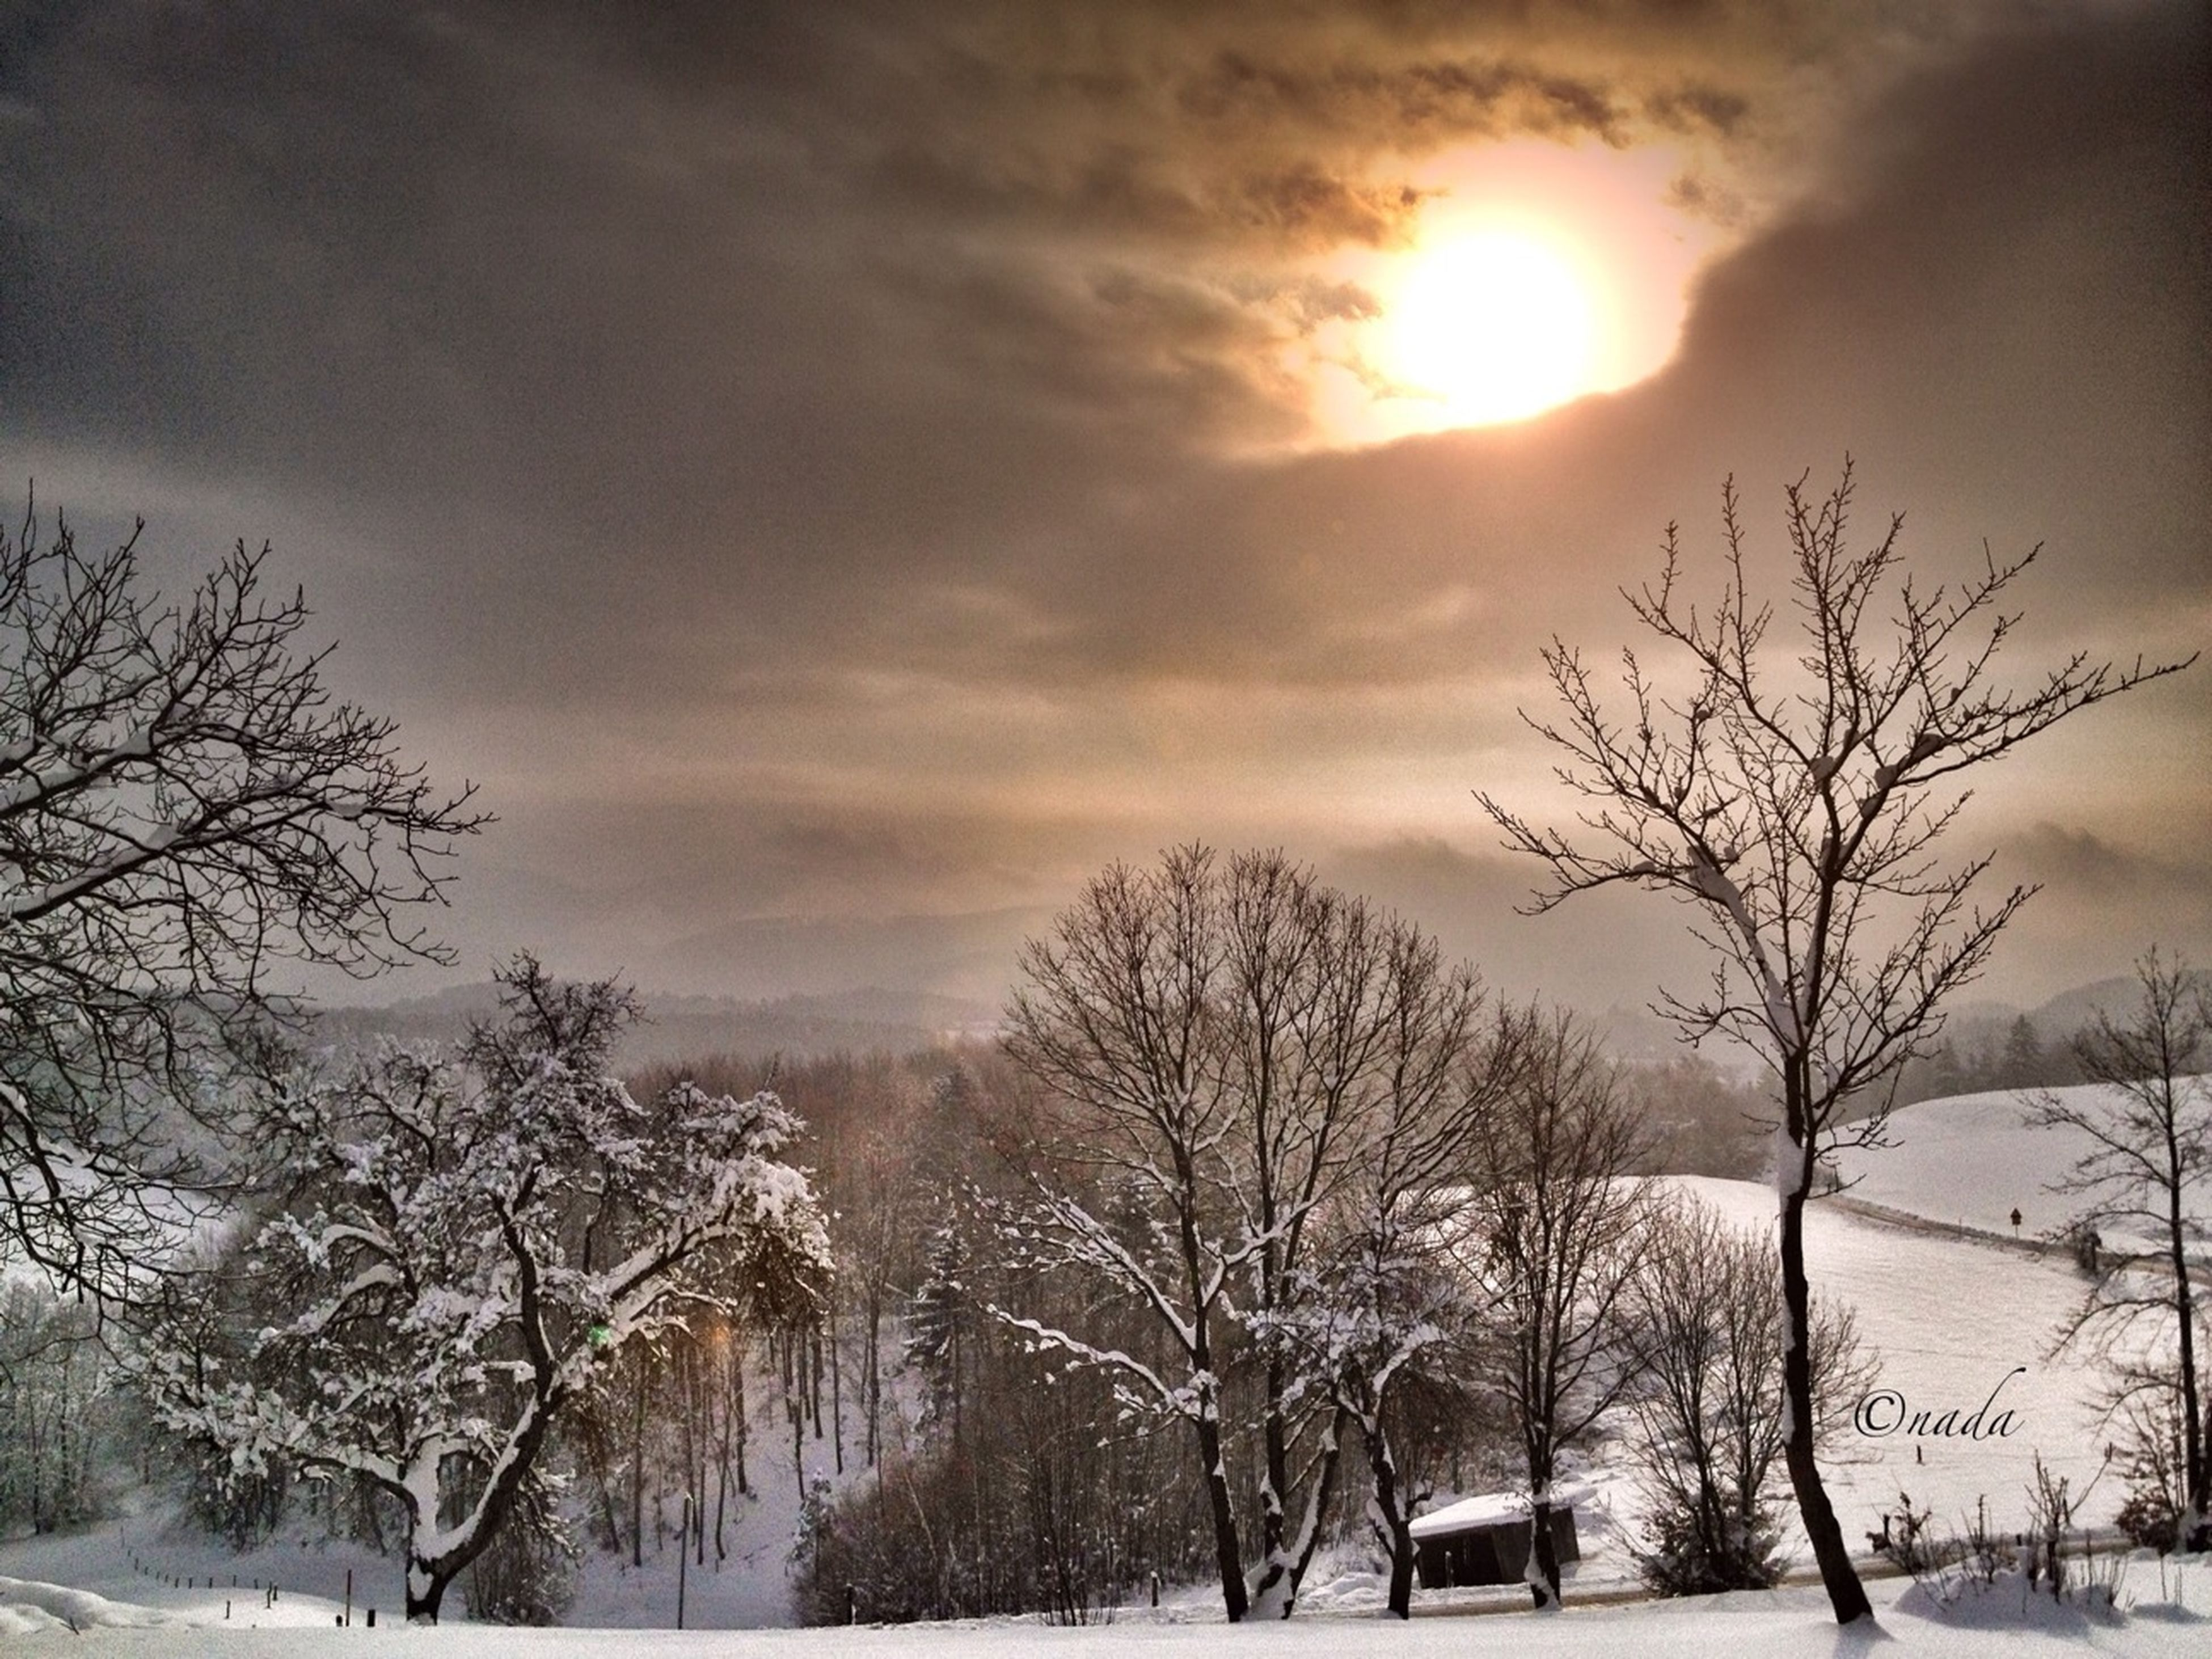 snow, winter, cold temperature, bare tree, tree, weather, sky, season, tranquility, branch, cloud - sky, sun, tranquil scene, nature, beauty in nature, scenics, covering, sunset, silhouette, cloudy